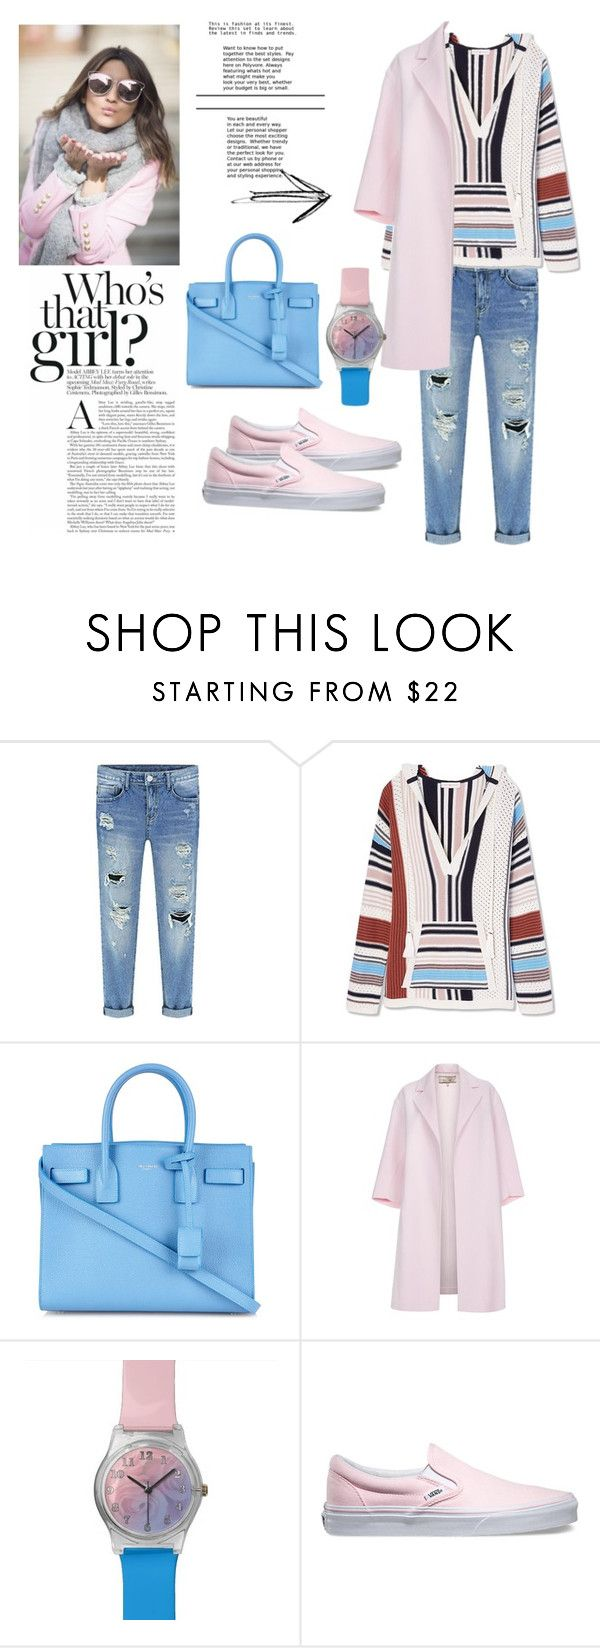 """Sorbet"" by pandabear55 ❤ liked on Polyvore featuring Tory Burch, Yves Saint Laurent, Paul Smith, May28th, Vans, women's clothing, women's fashion, women, female and woman"